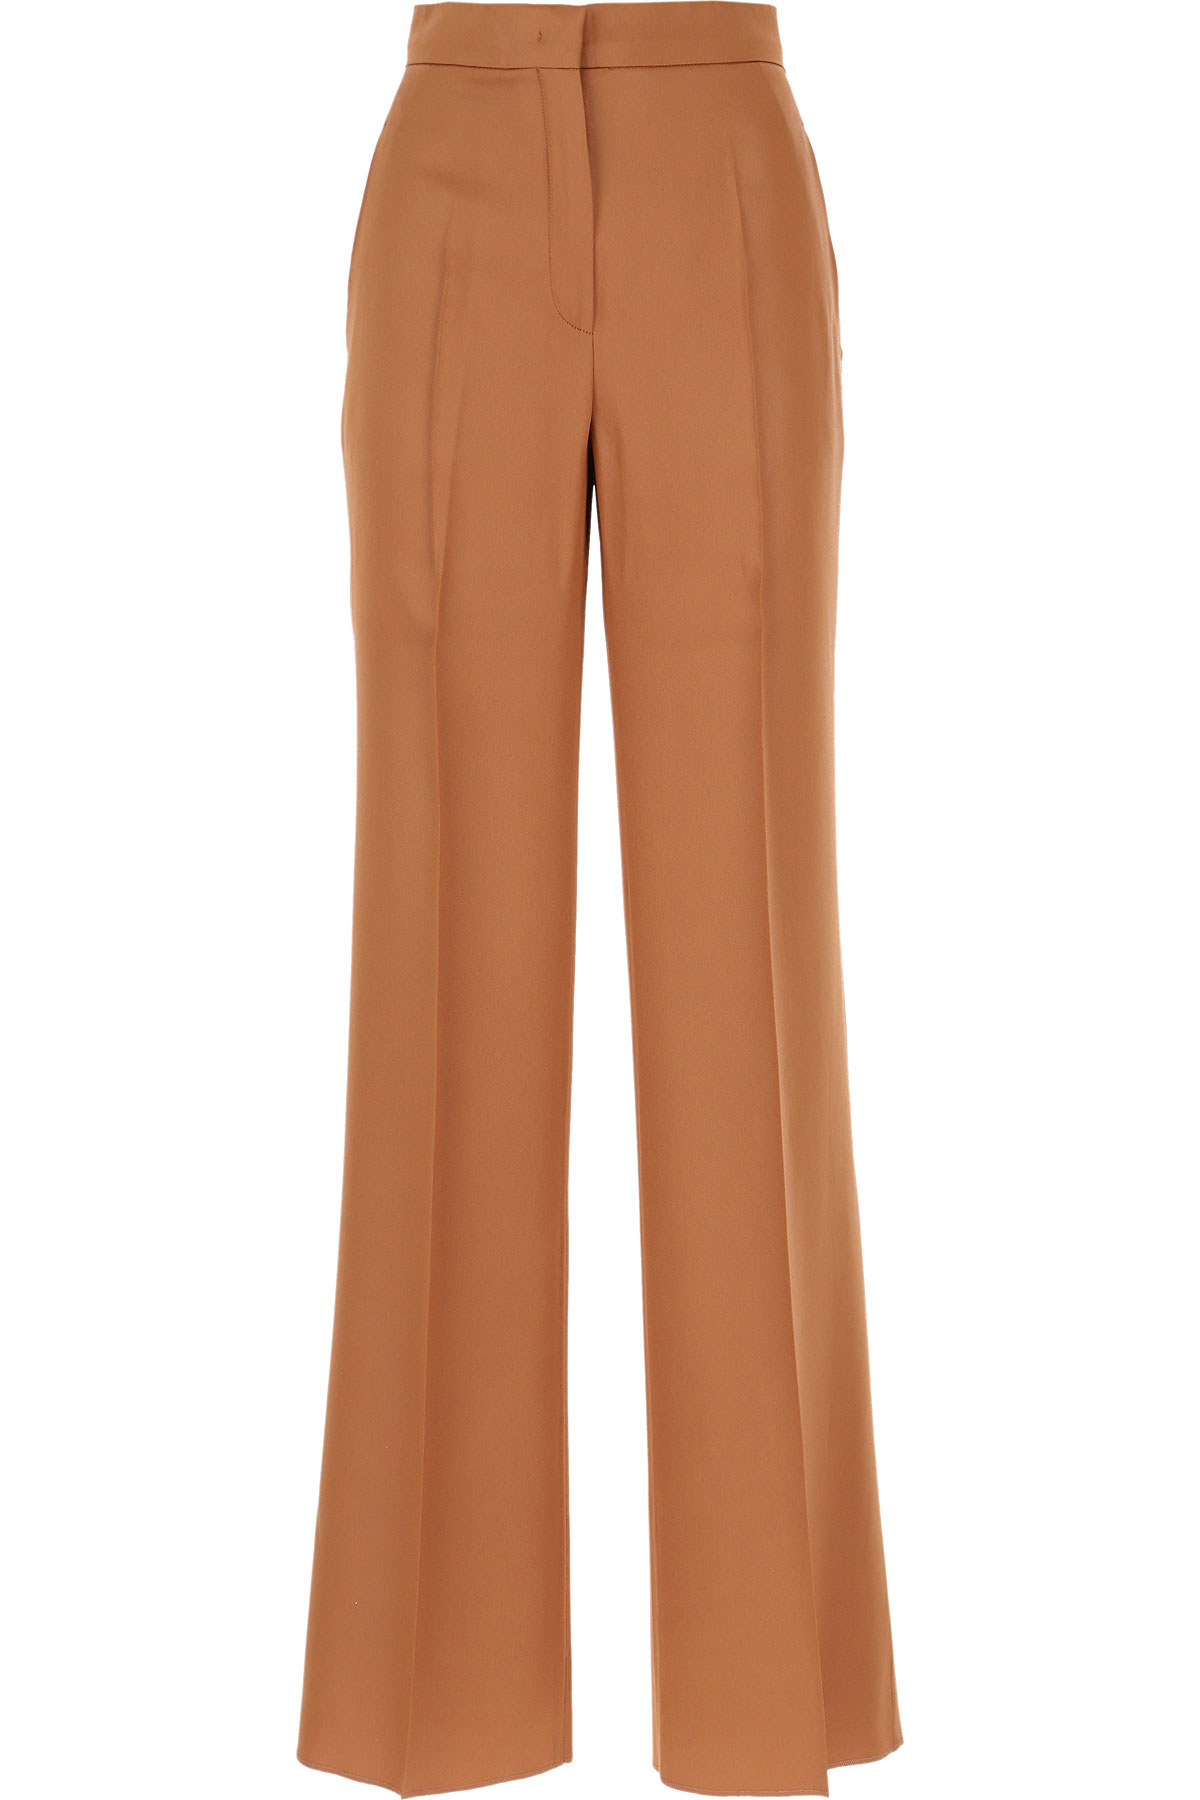 Max Mara Pants for Women On Sale, Brown, acetate, 2019, 34 4 6